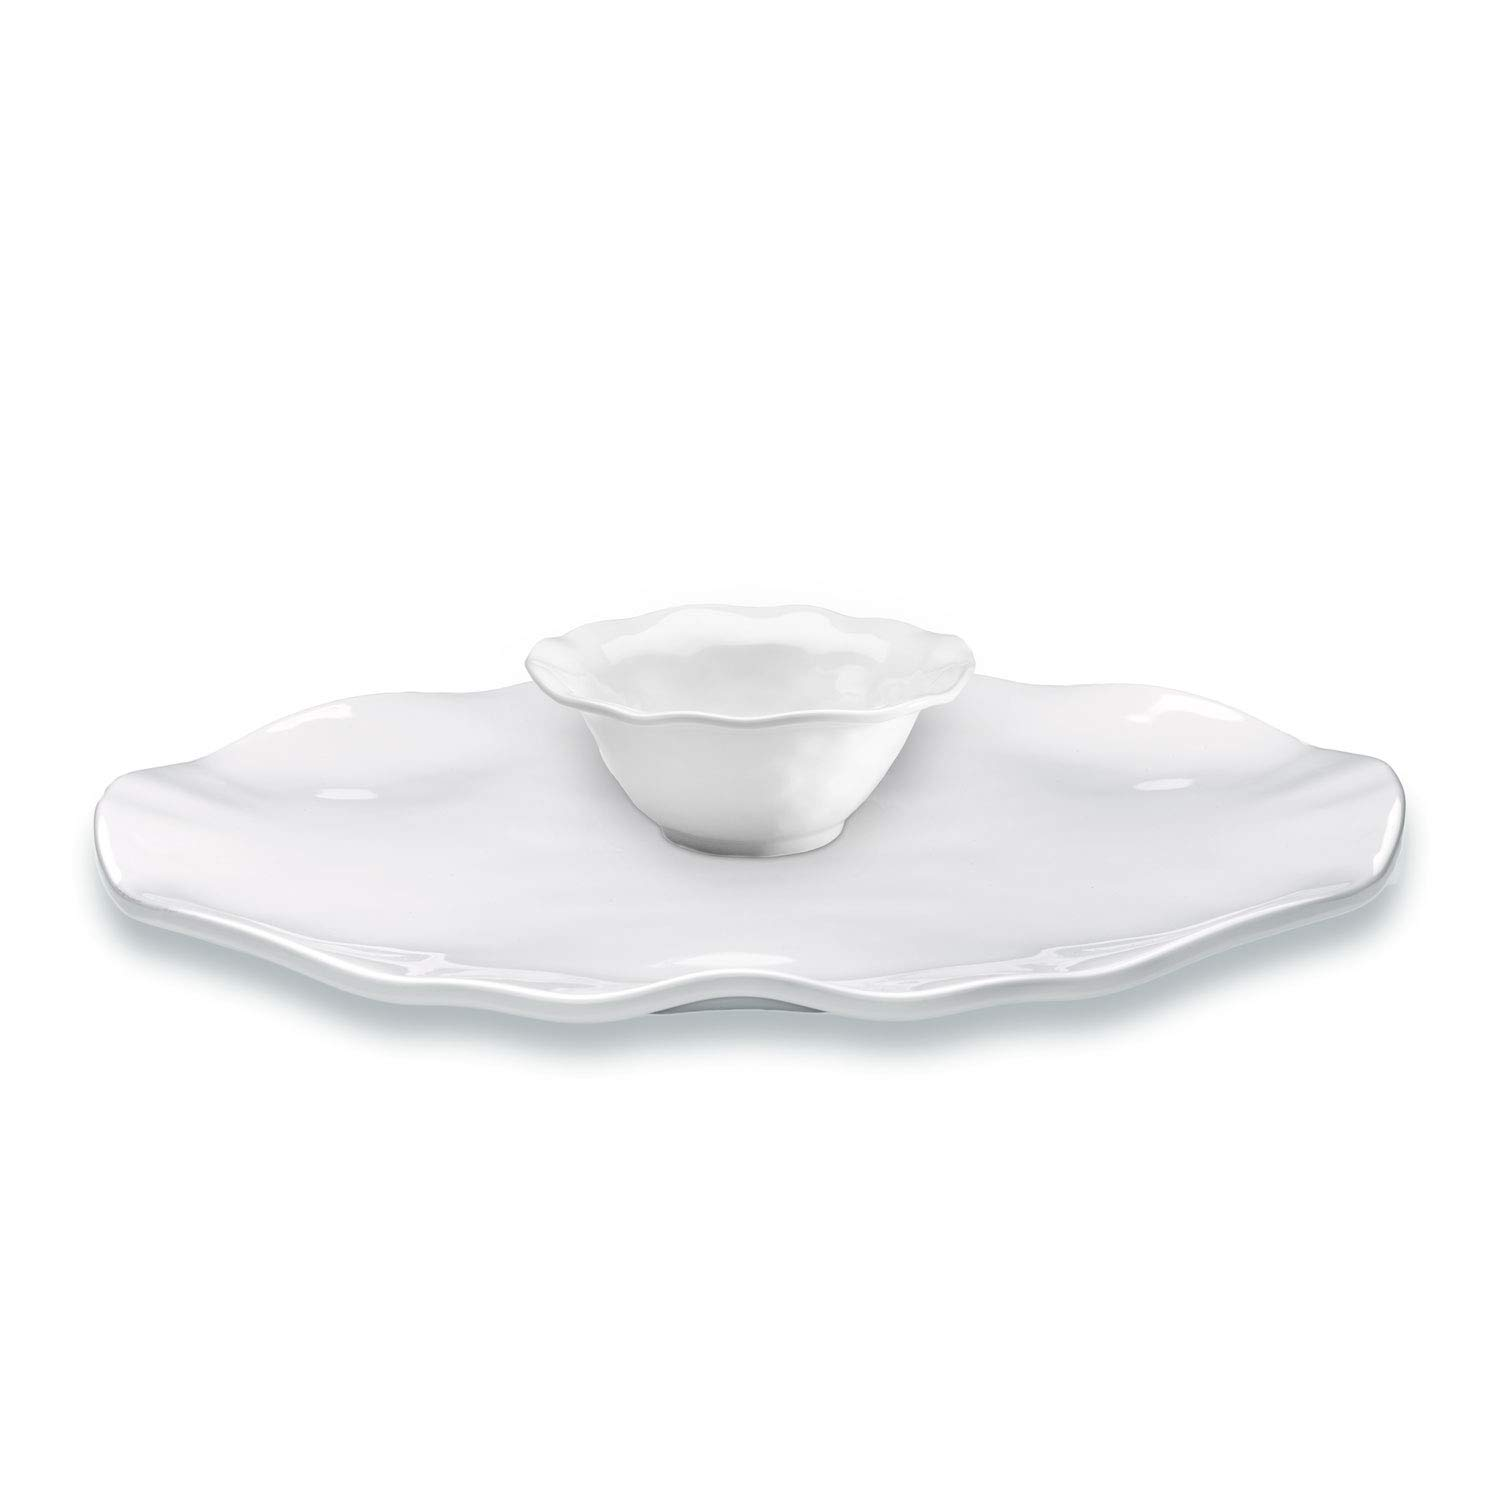 Q Squared Ruffle Round 2-piece Gift Set, Includes 16 inch Round Platter and Matching 5 inch Dip Bowl, BPA-free Melamine, White